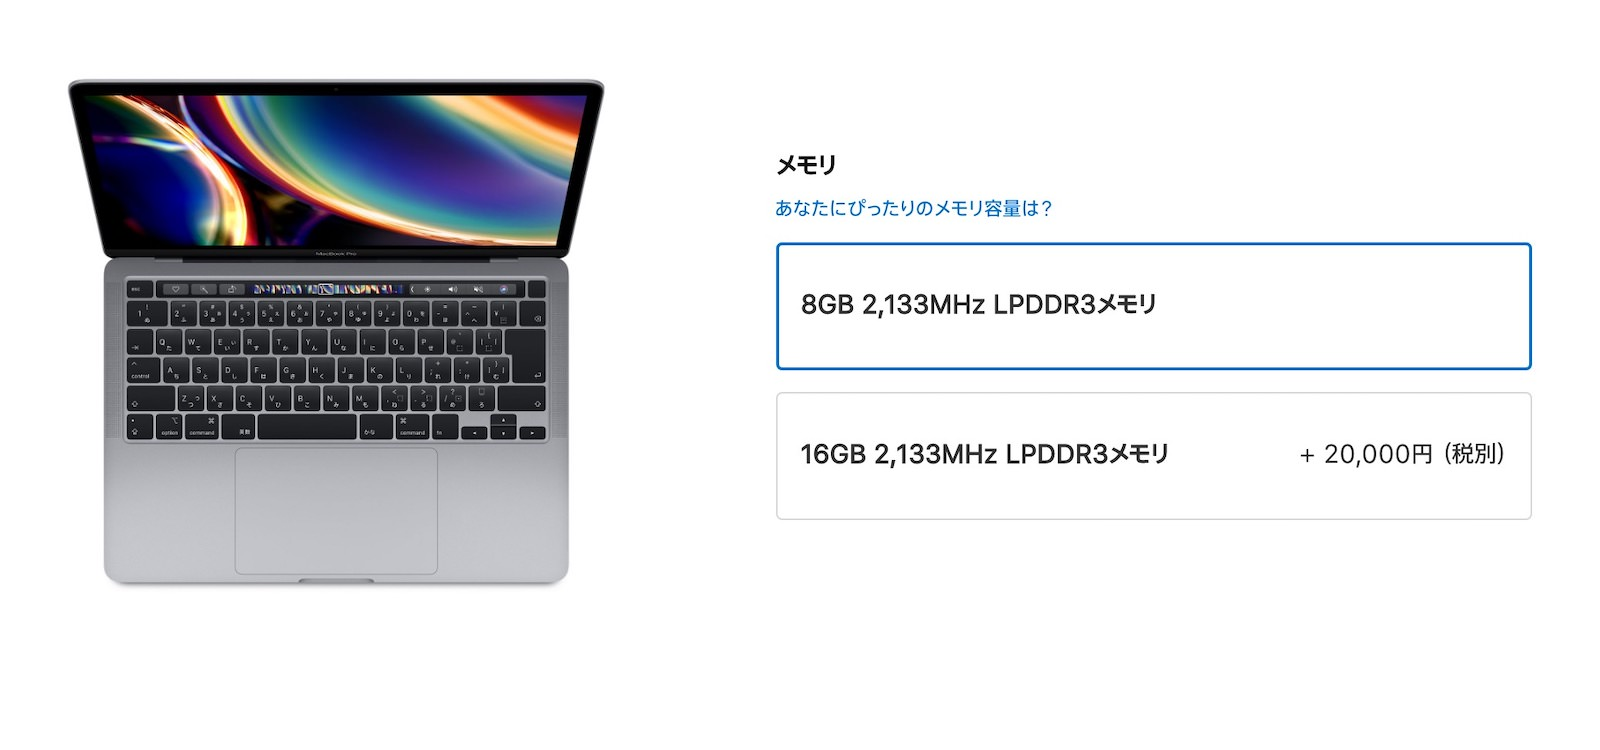 Macbook pro 2port model ram